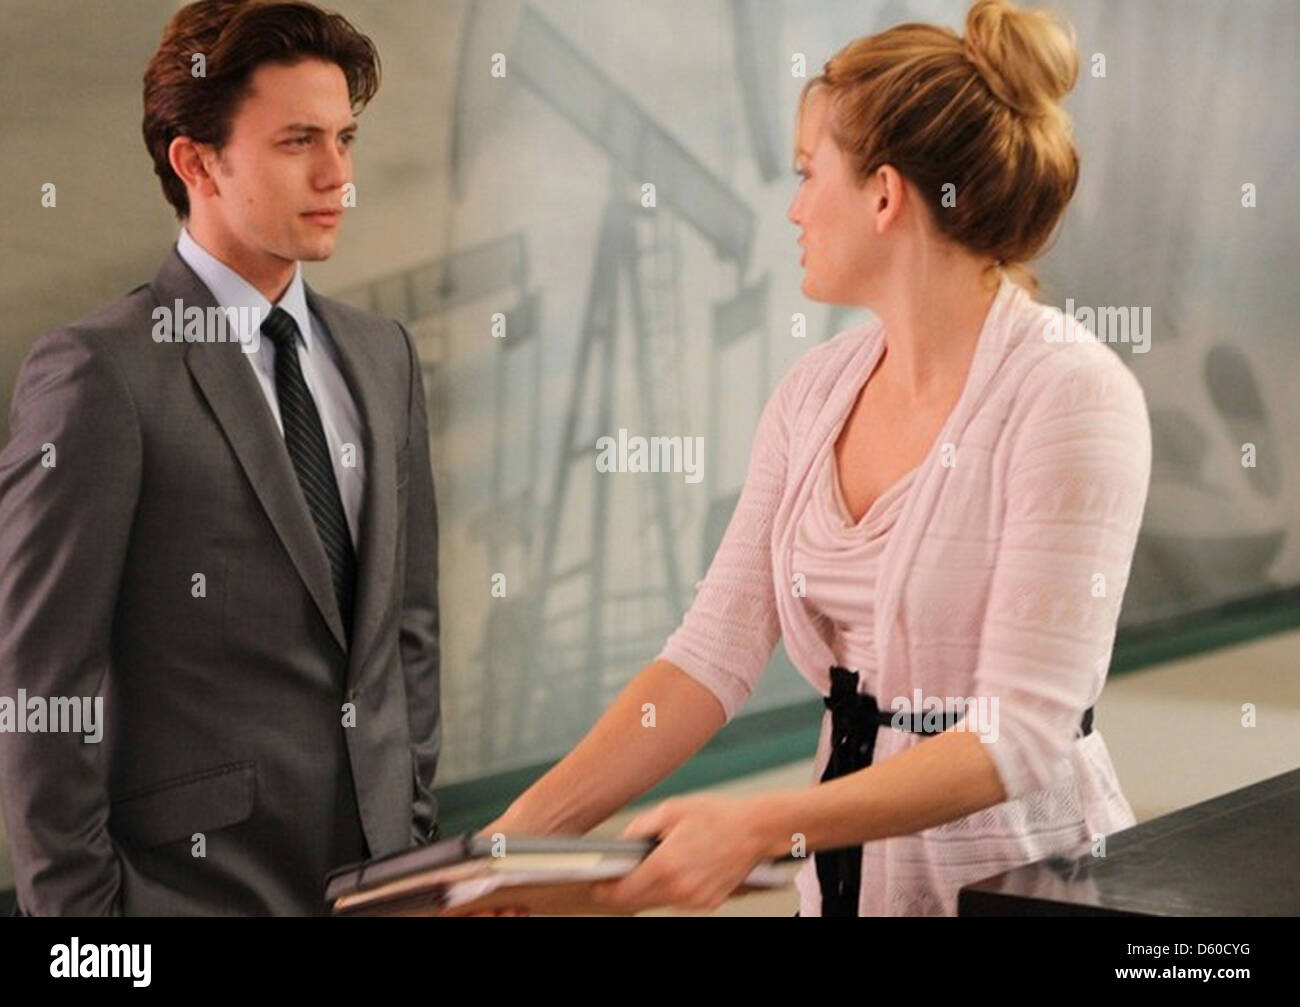 SYRUP 2012 9th productions film with Shiloh Fernandez and Brittany Snow - Stock Image